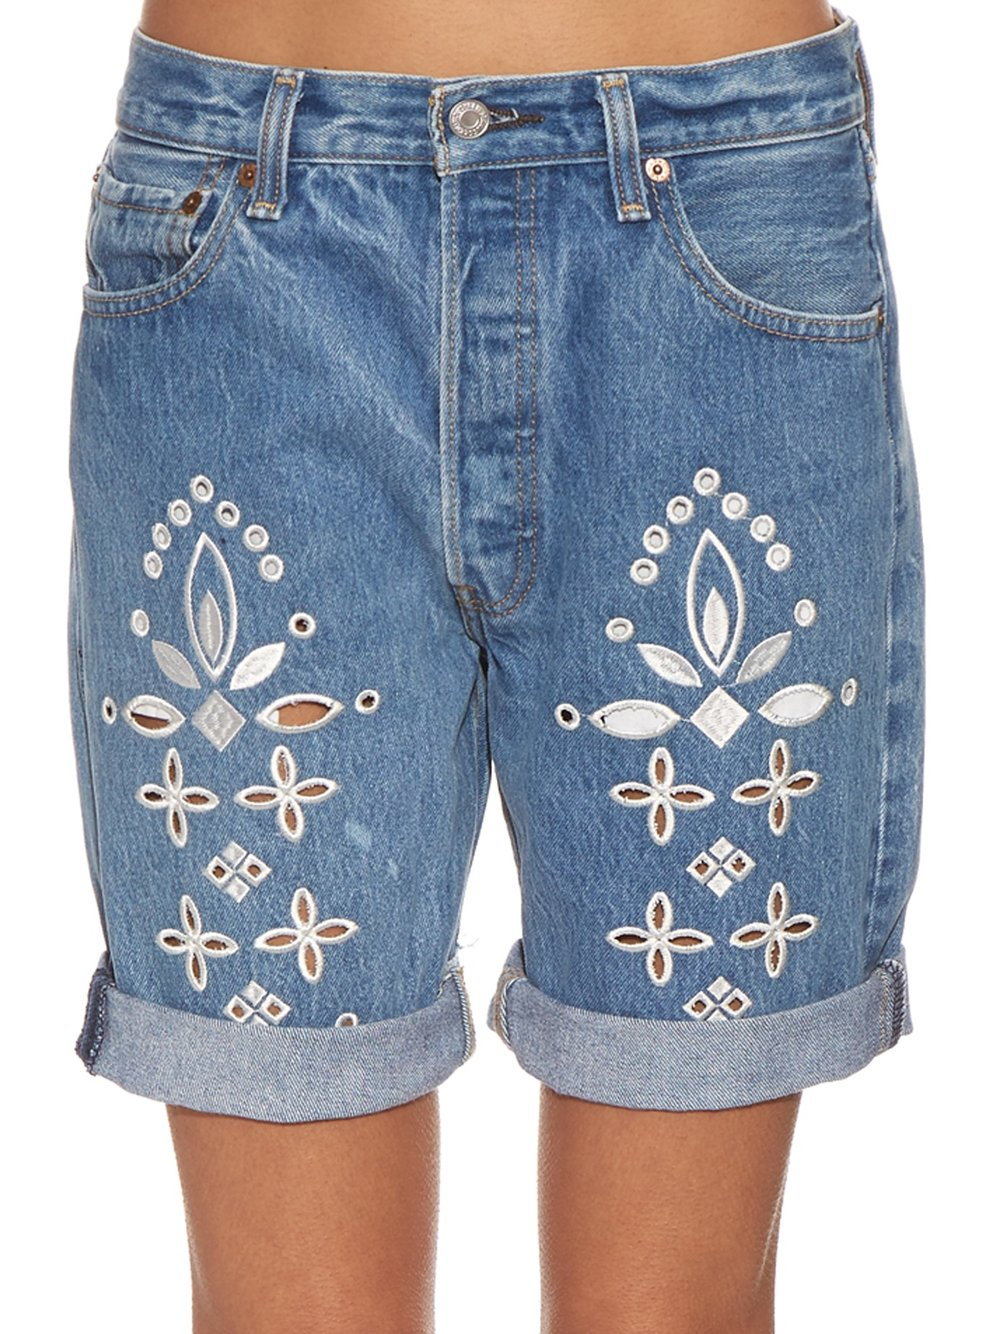 BLISS & MISCHIEF EYELET BANDANA DENIM SHORTS